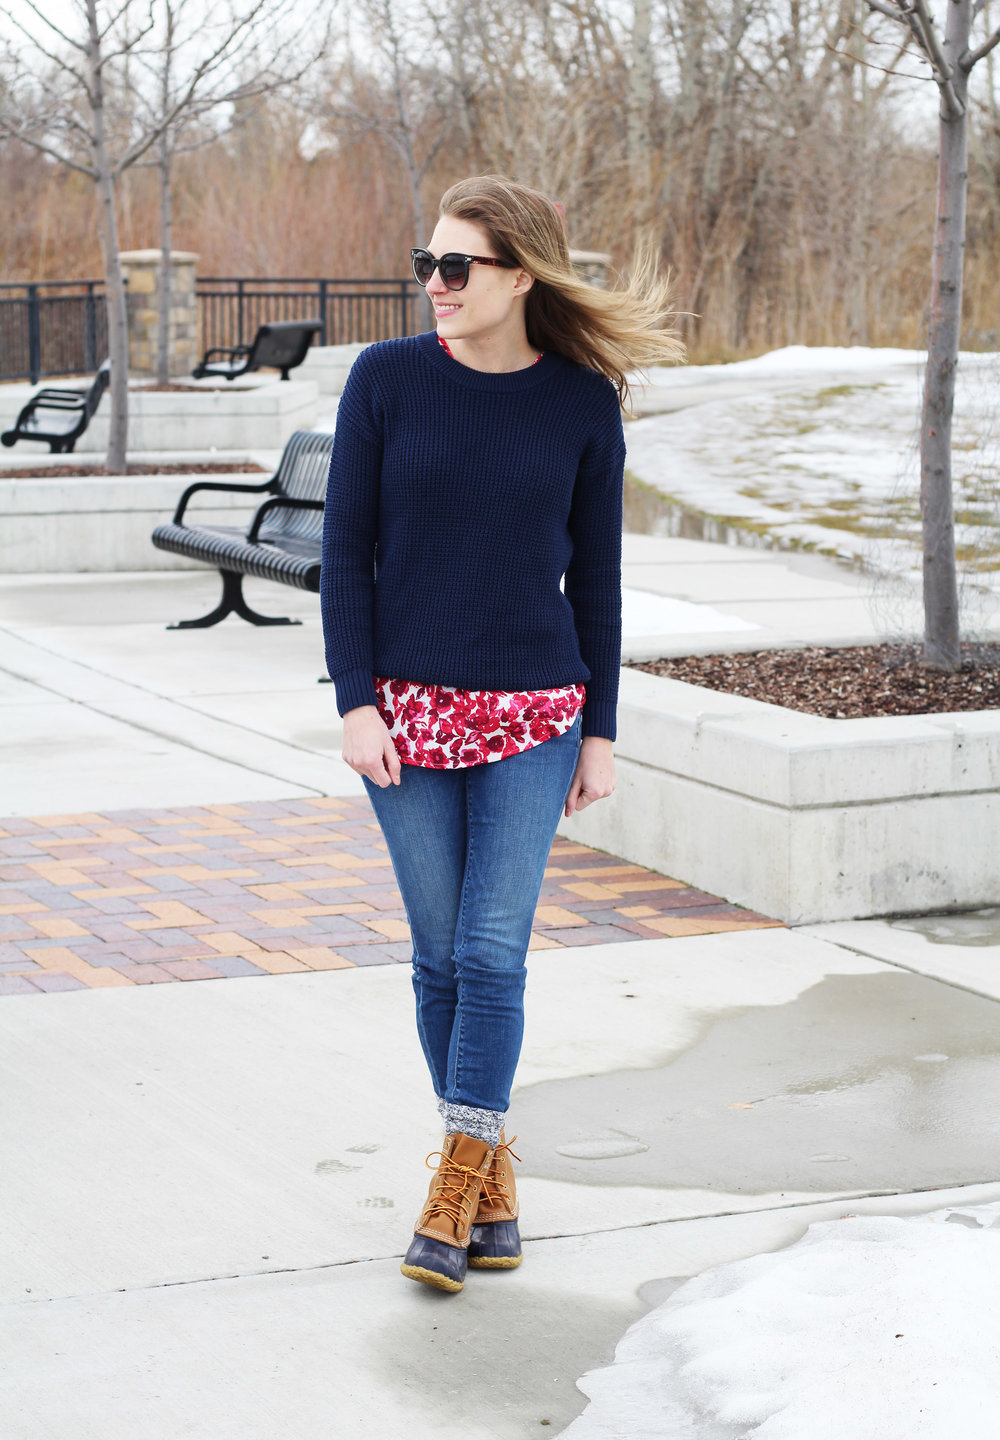 Red floral top outfit with navy sweater and navy Bean boots — Cotton Cashmere Cat Hair